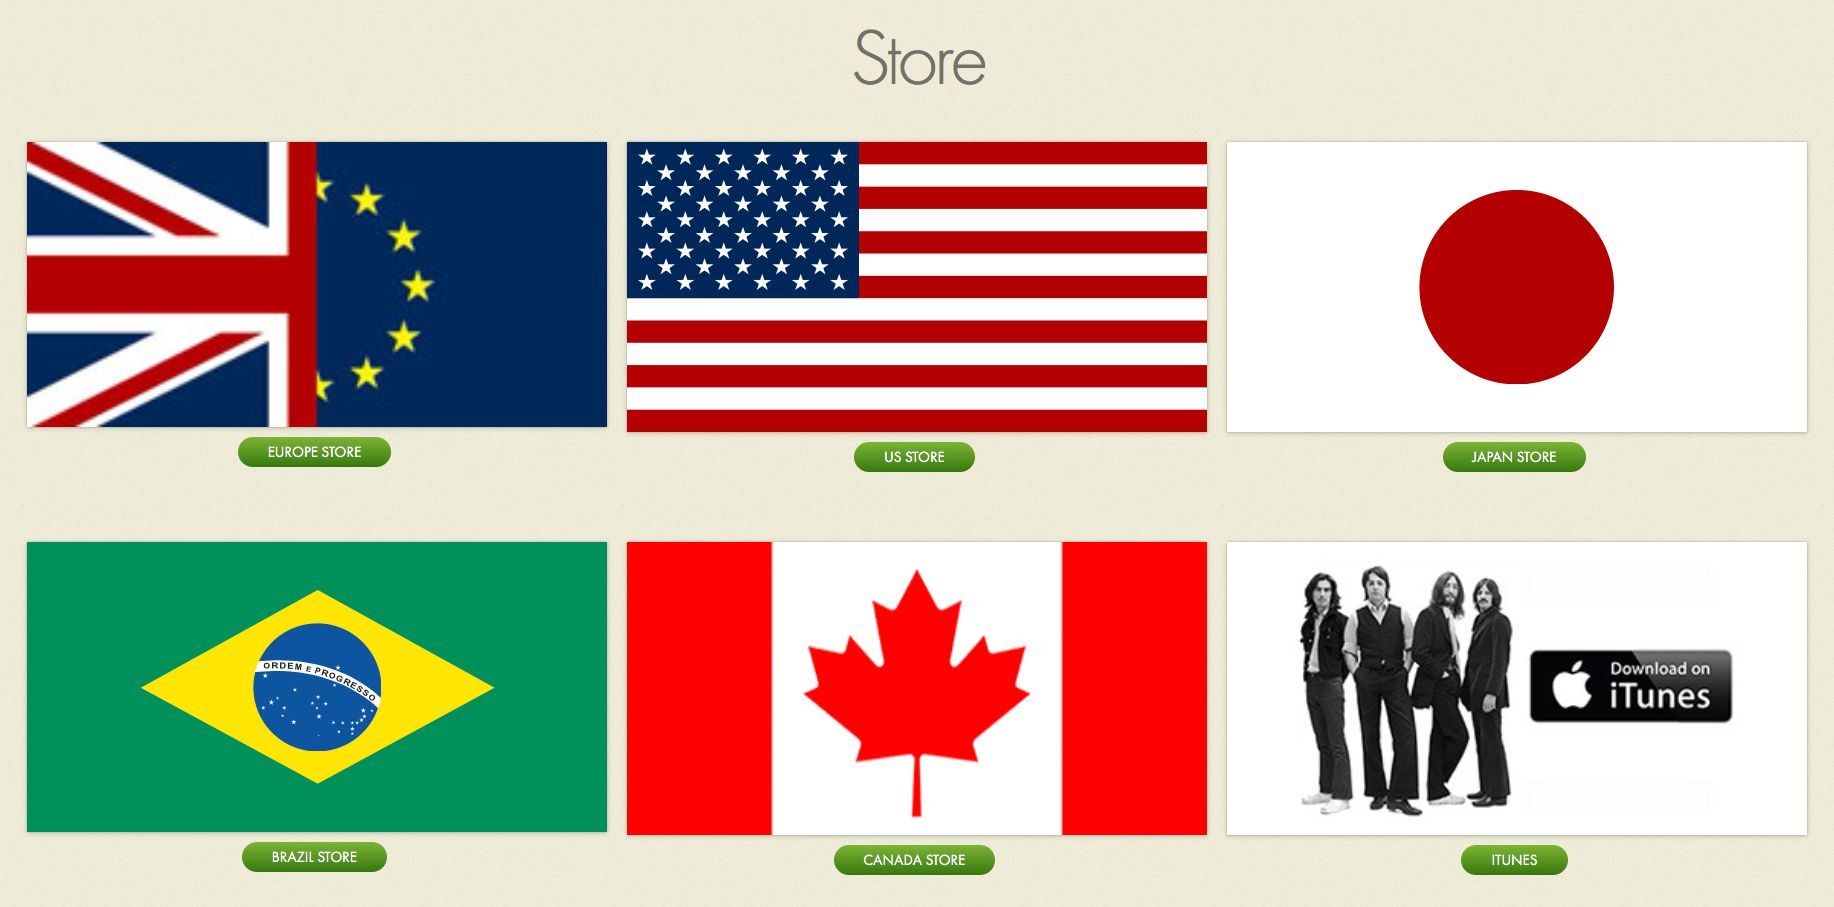 Beatles Official Site Store